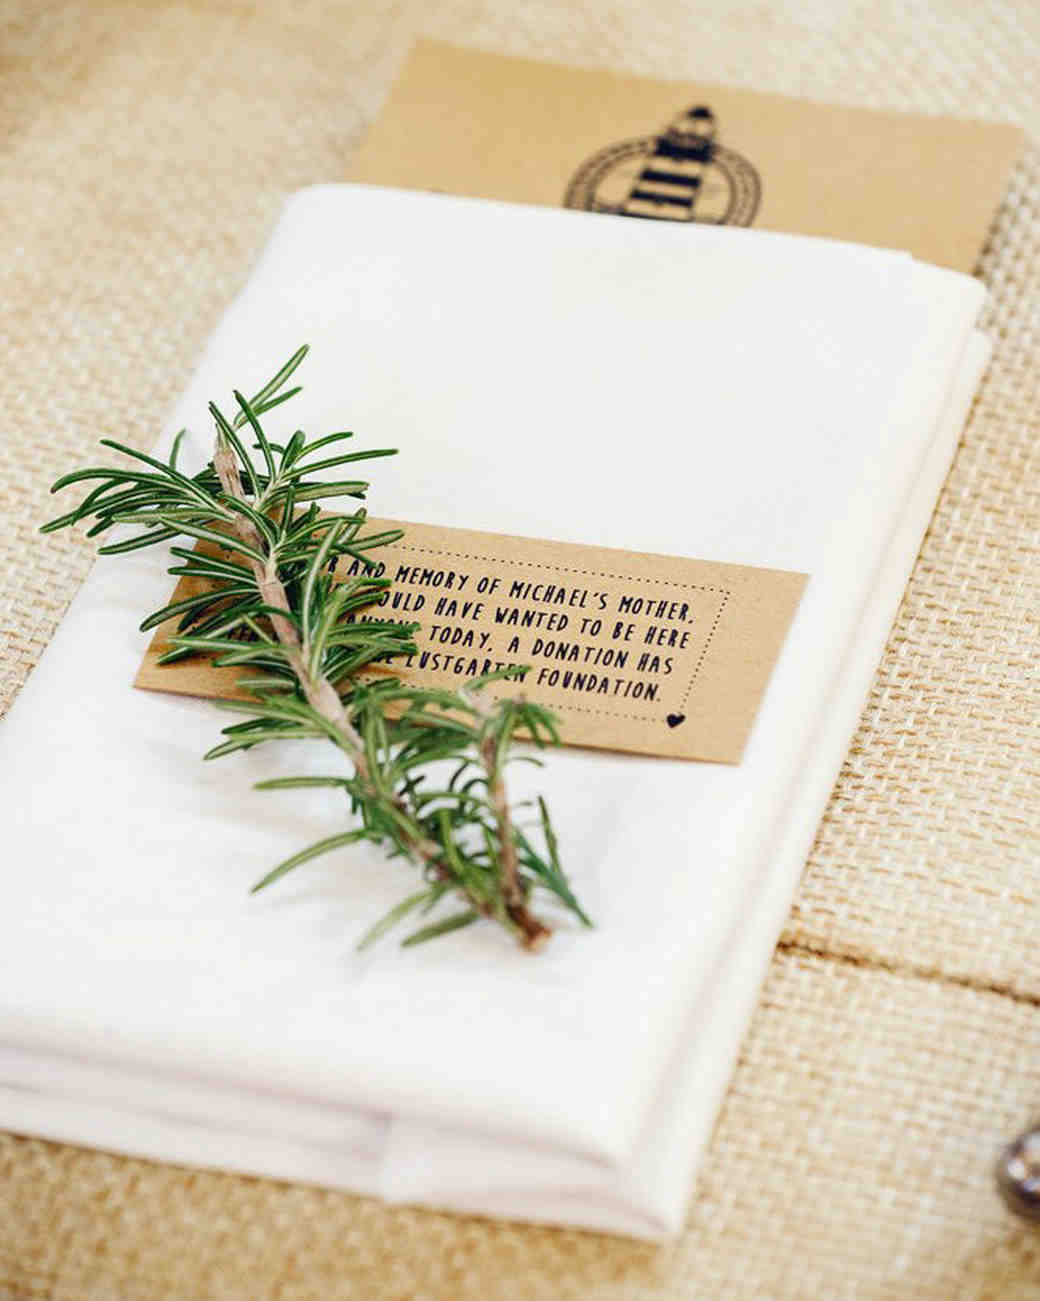 wedding in memoriam notes with greenery